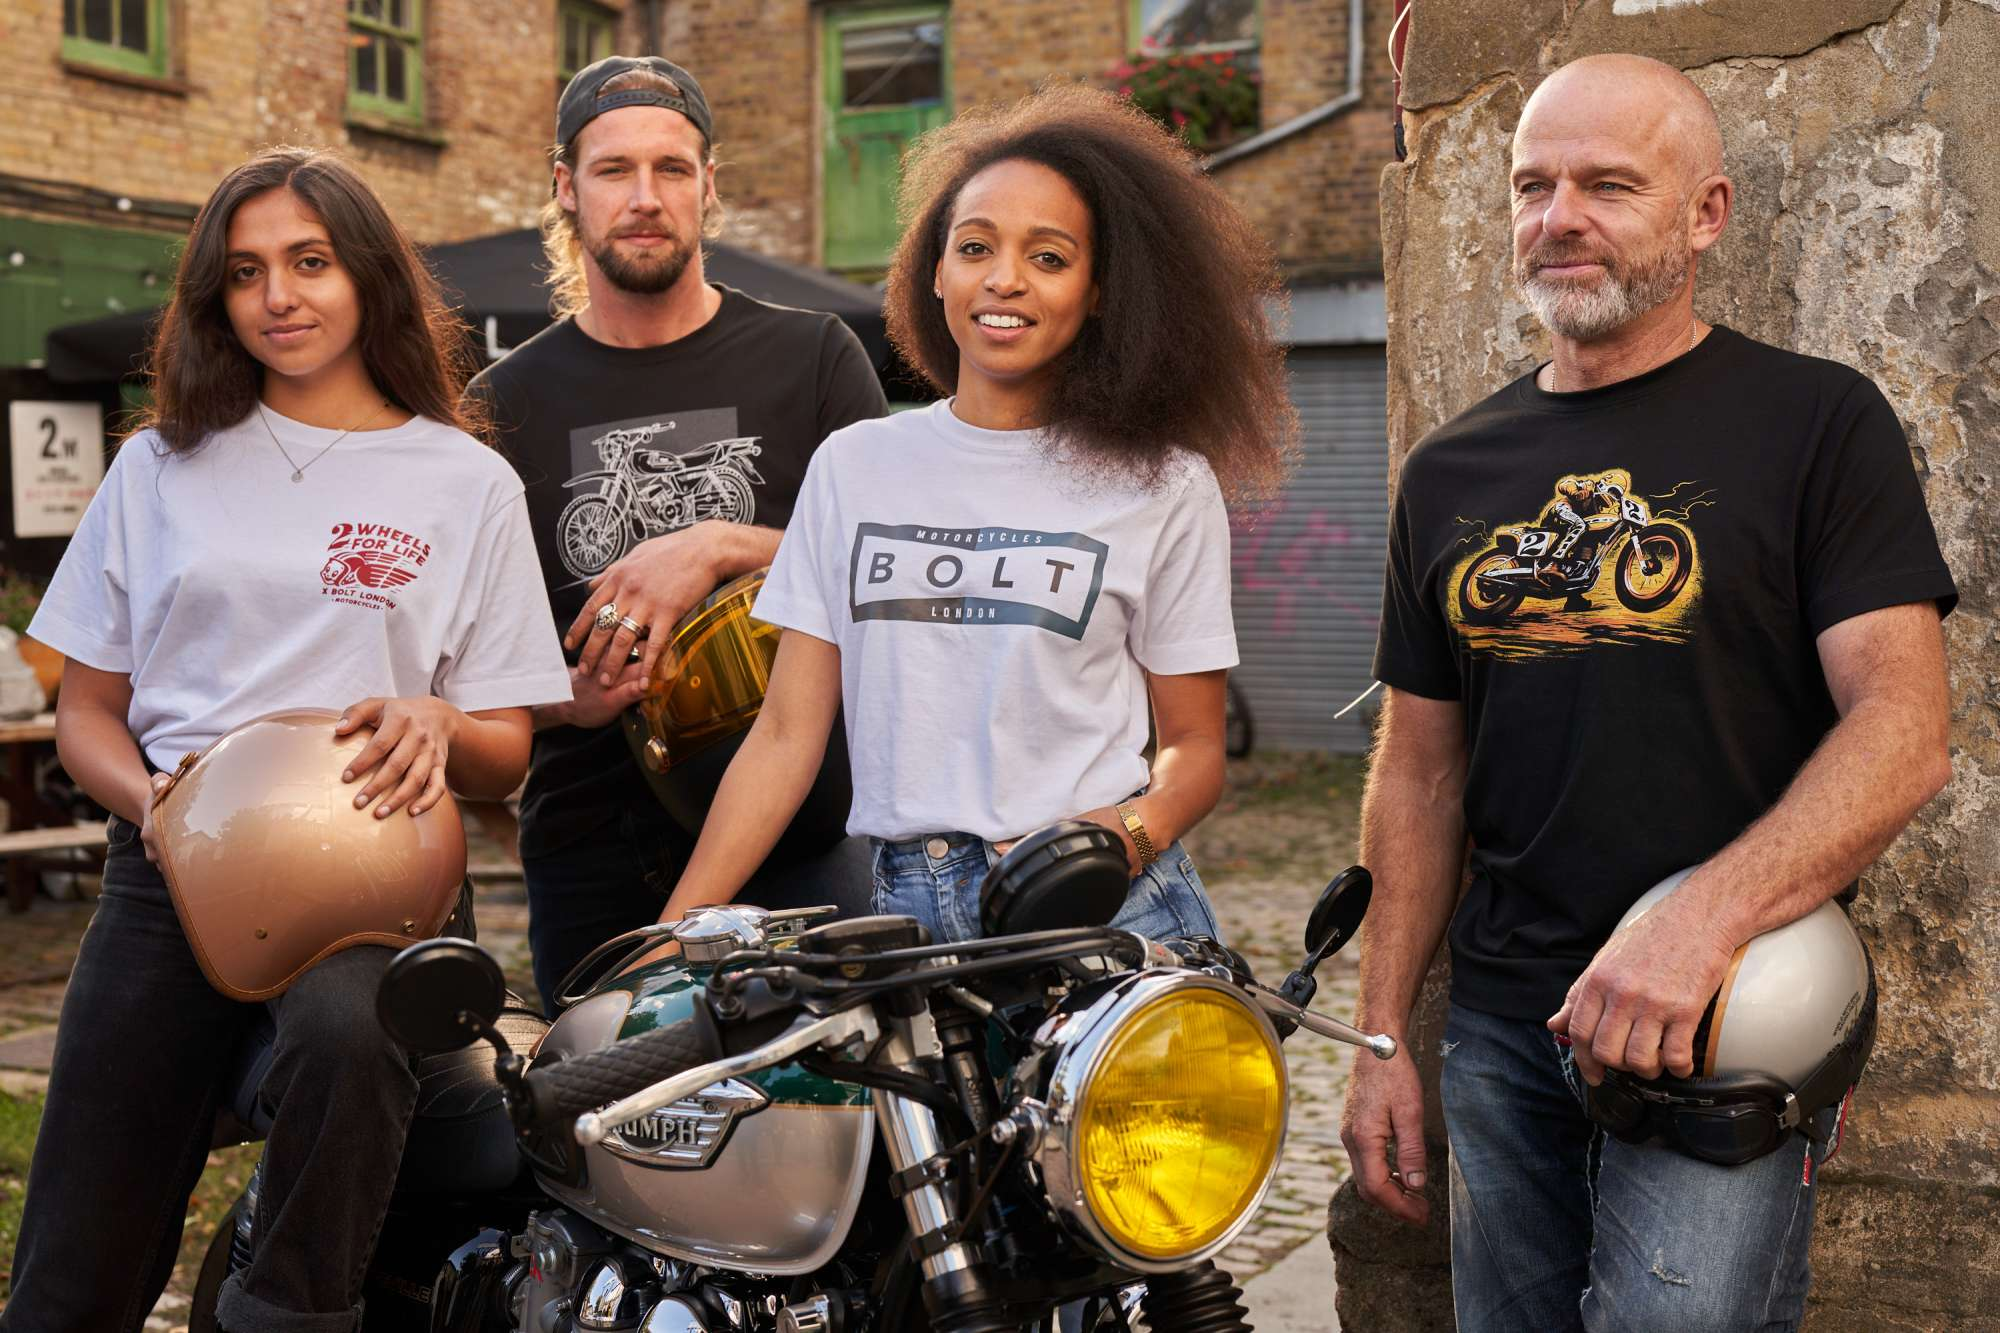 <b>Our Tees are Always a Good Look</b>